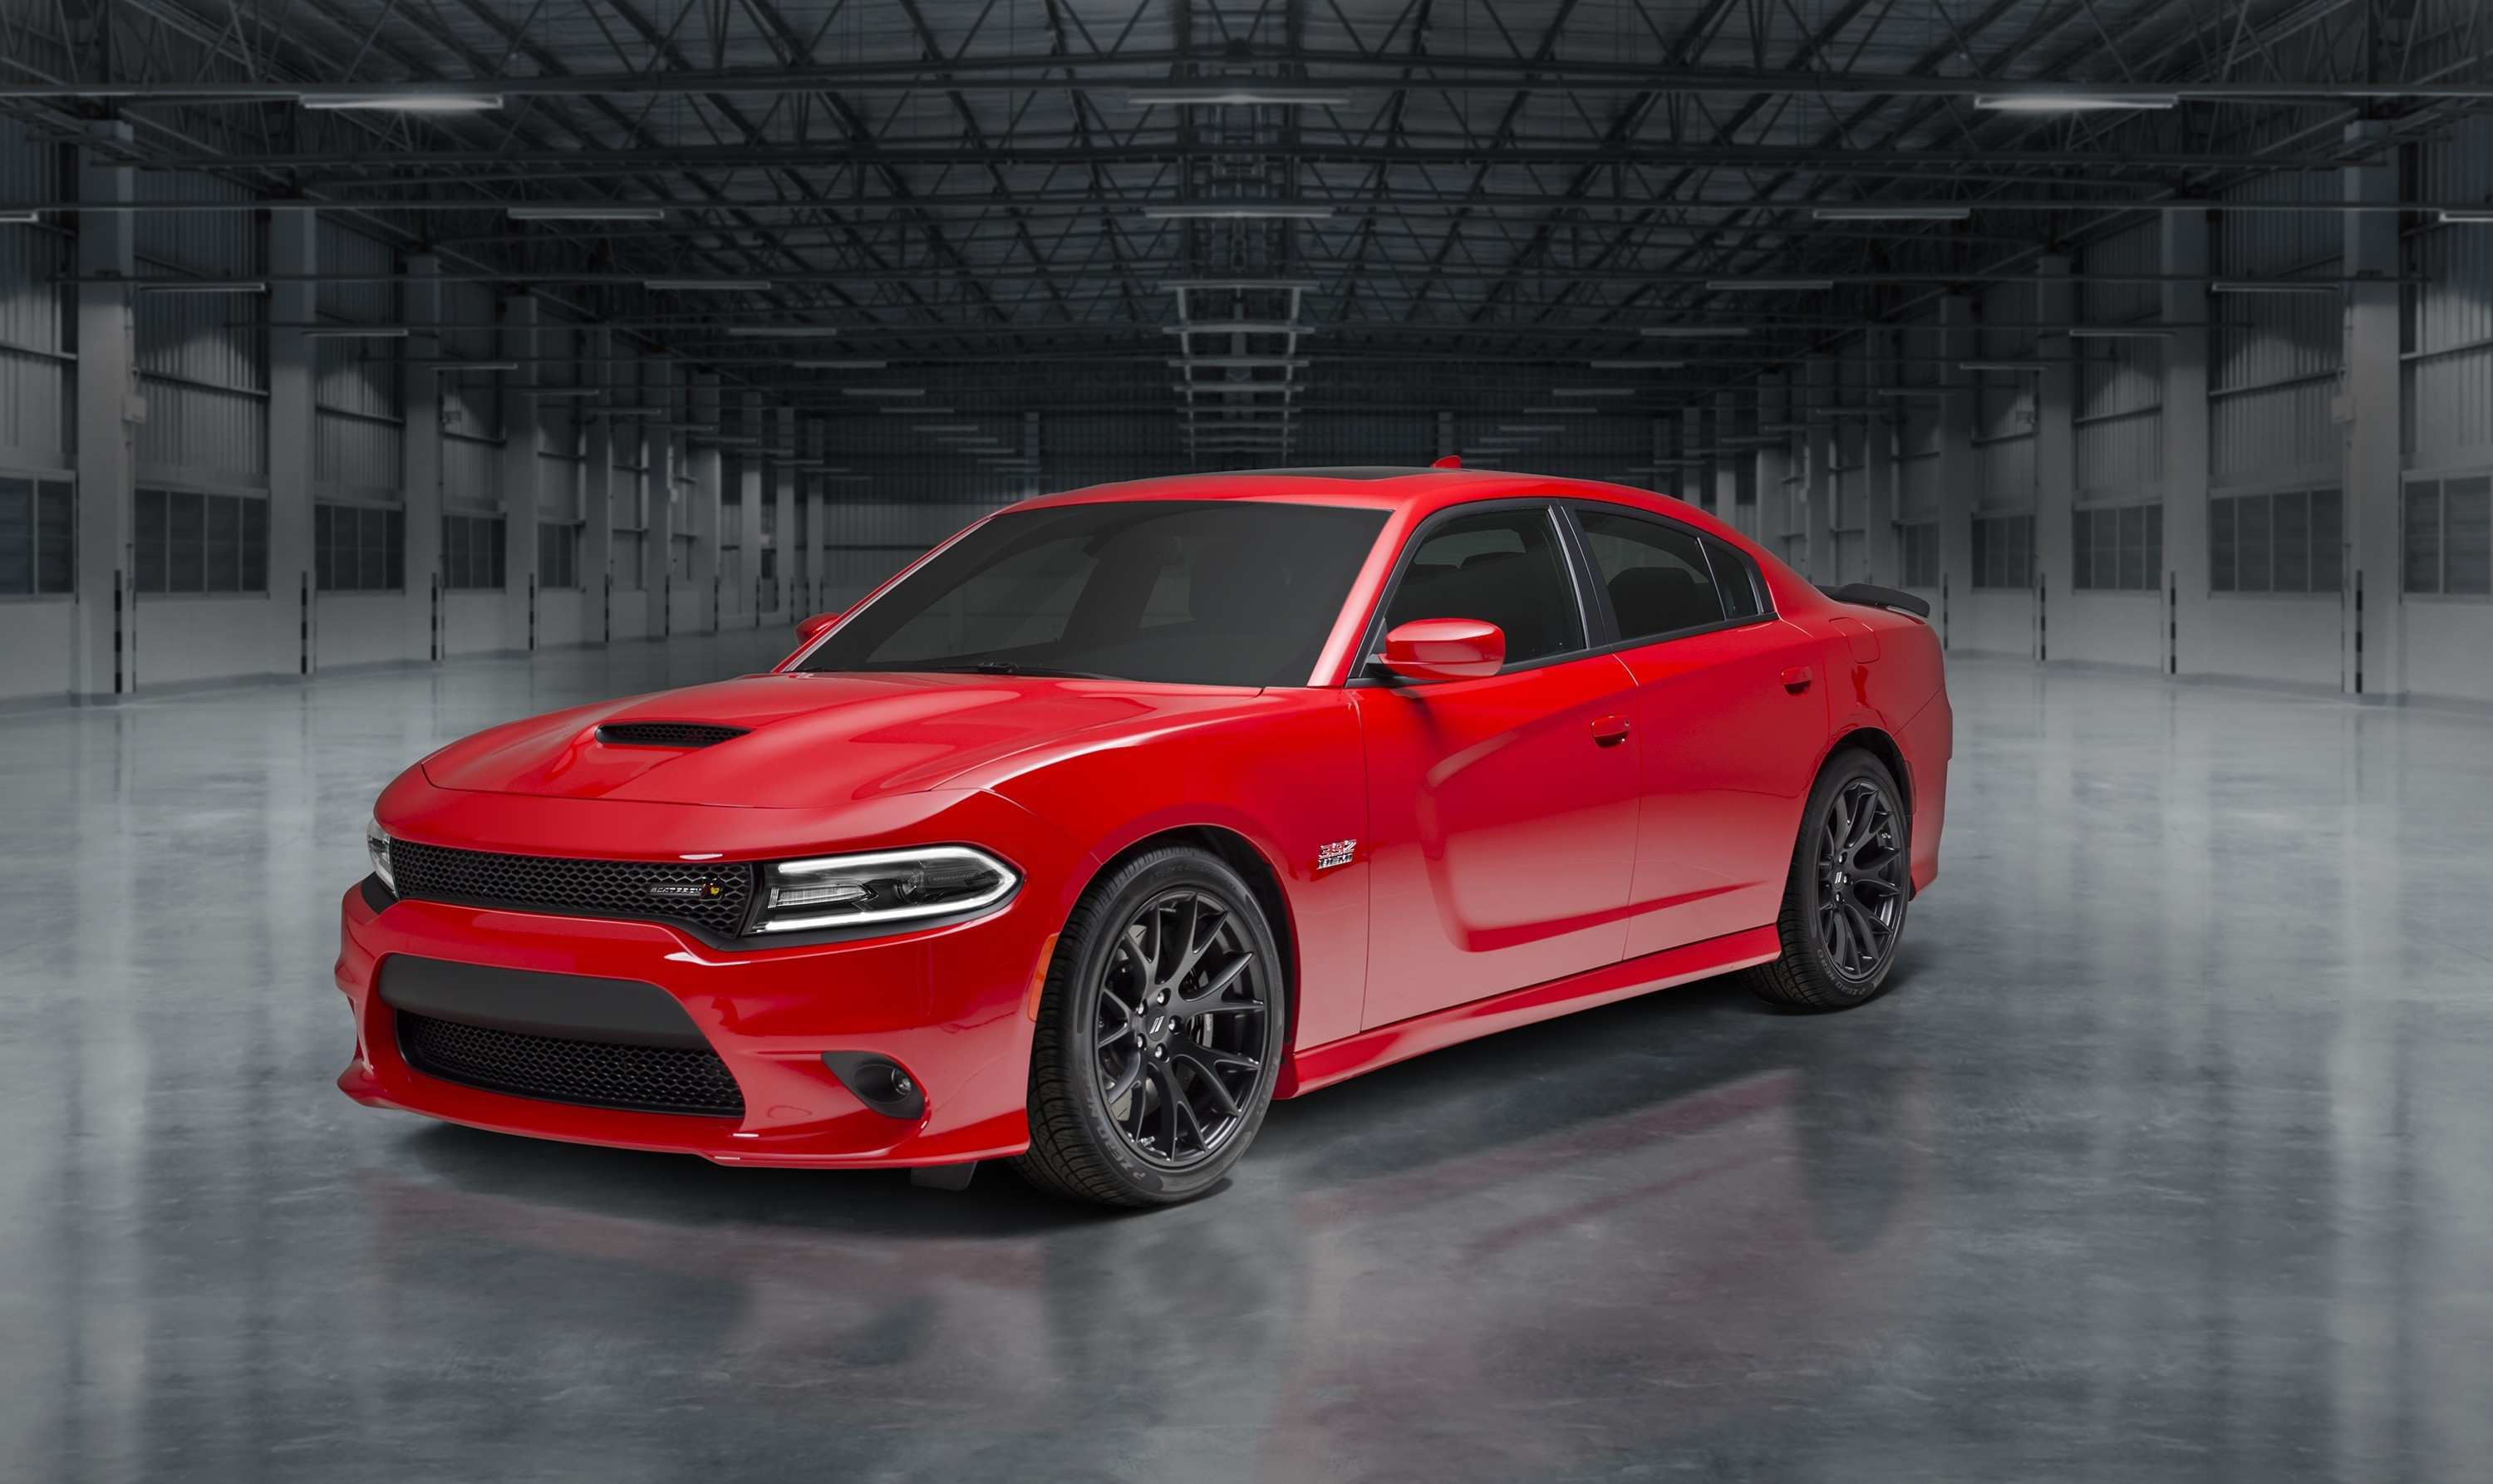 44 Concept of Best Release Date For 2019 Dodge Charger Price And Review Performance and New Engine with Best Release Date For 2019 Dodge Charger Price And Review